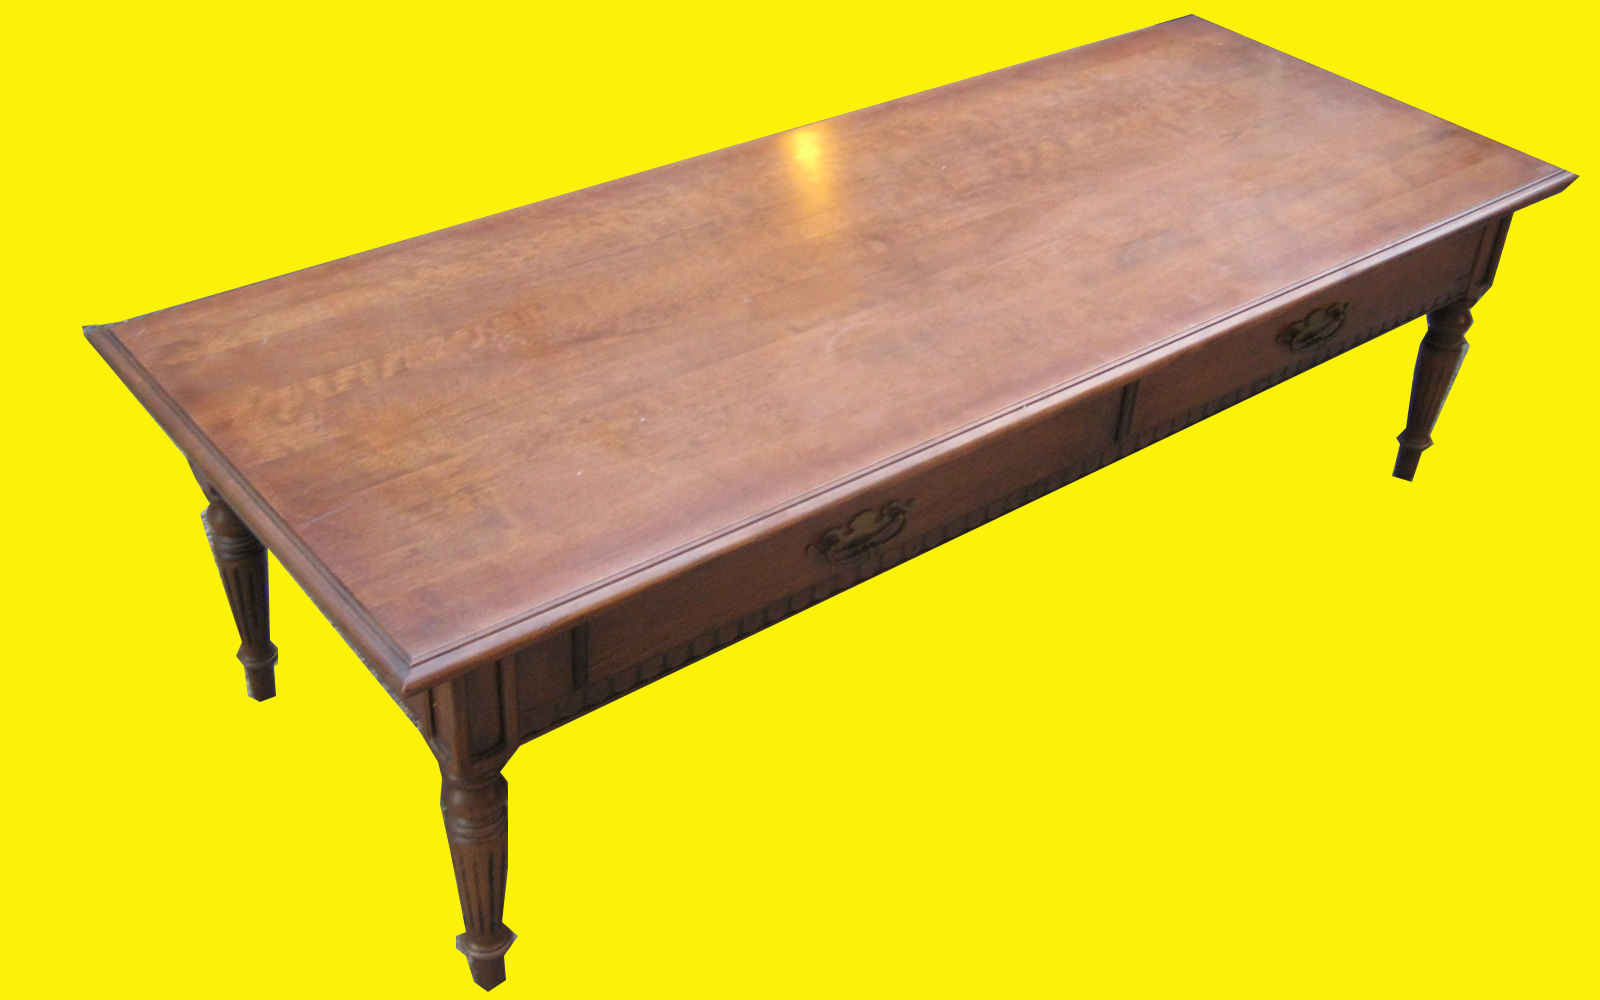 Uhuru Furniture & Collectibles: Ethan Allen Coffee Table SOLD